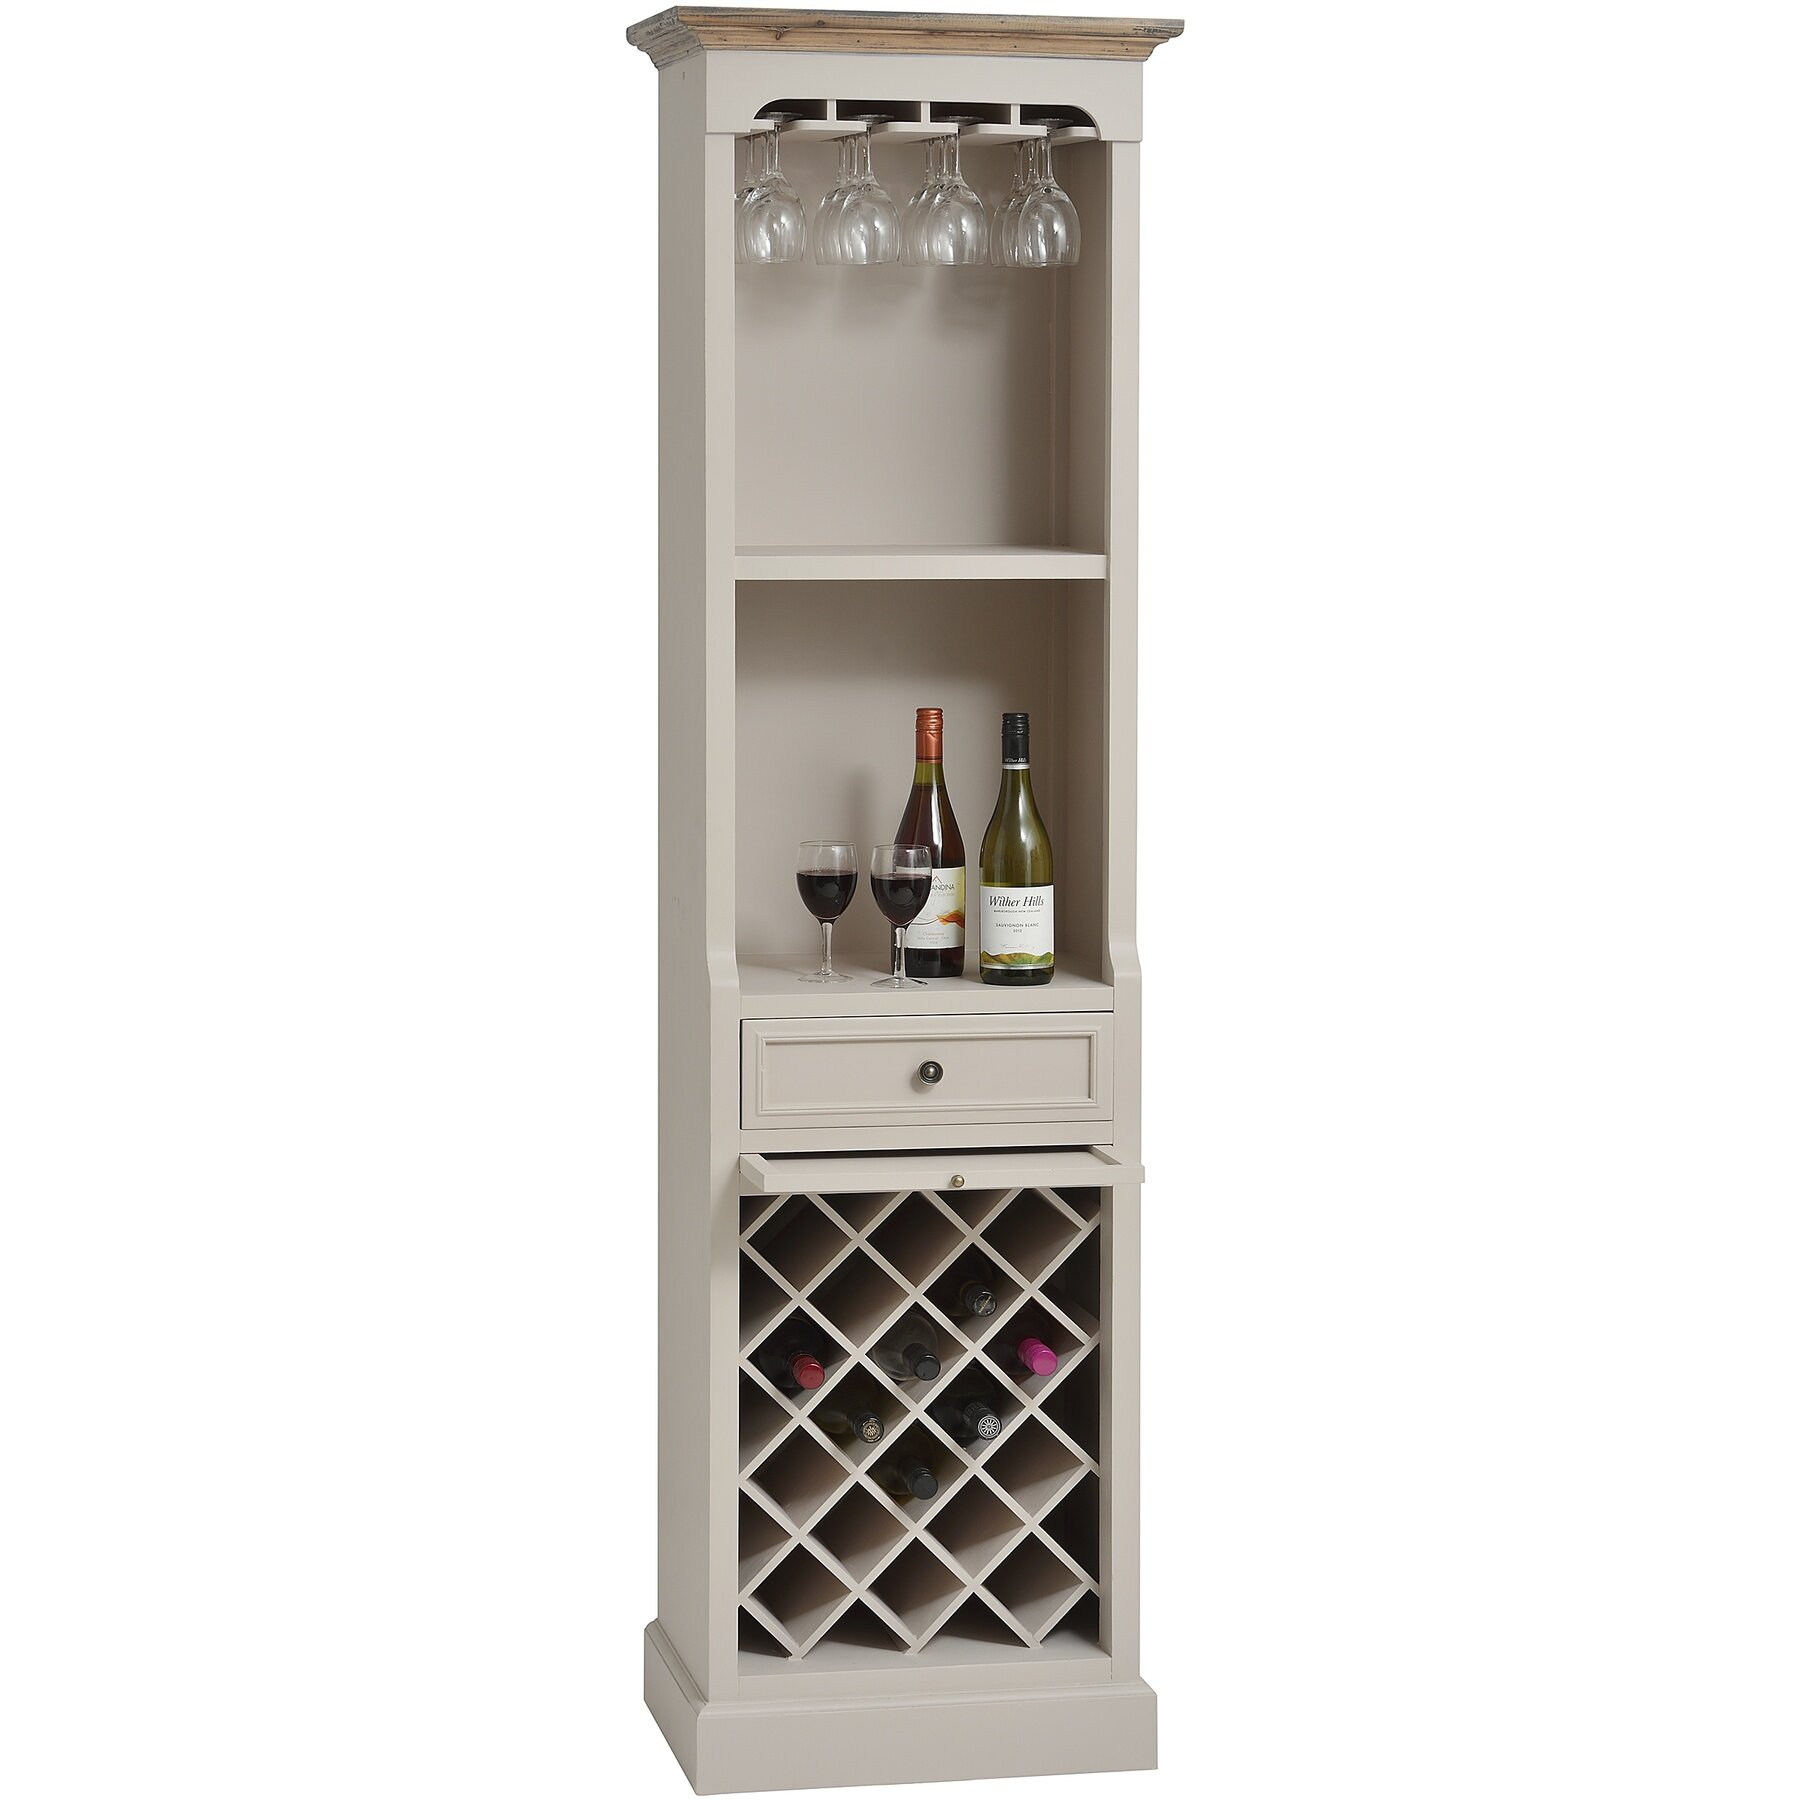 Hill interiors studley 12 bottle floor wine rack wayfair uk for Floor wine rack